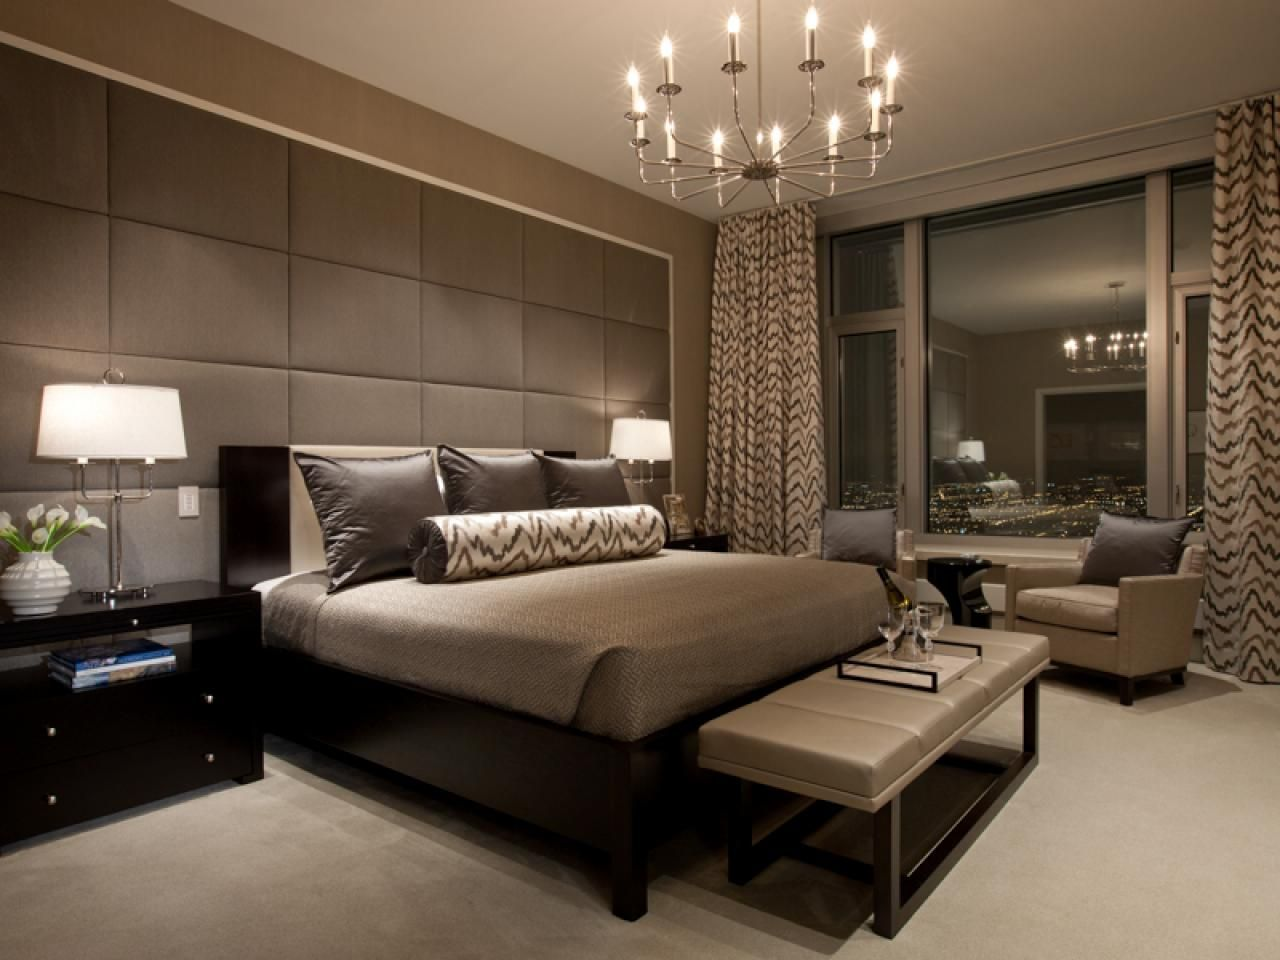 Elegant Bedroom Design Cool Sanctuaries With Style  Drapery Fabric Remodeling Ideas And Hgtv Inspiration